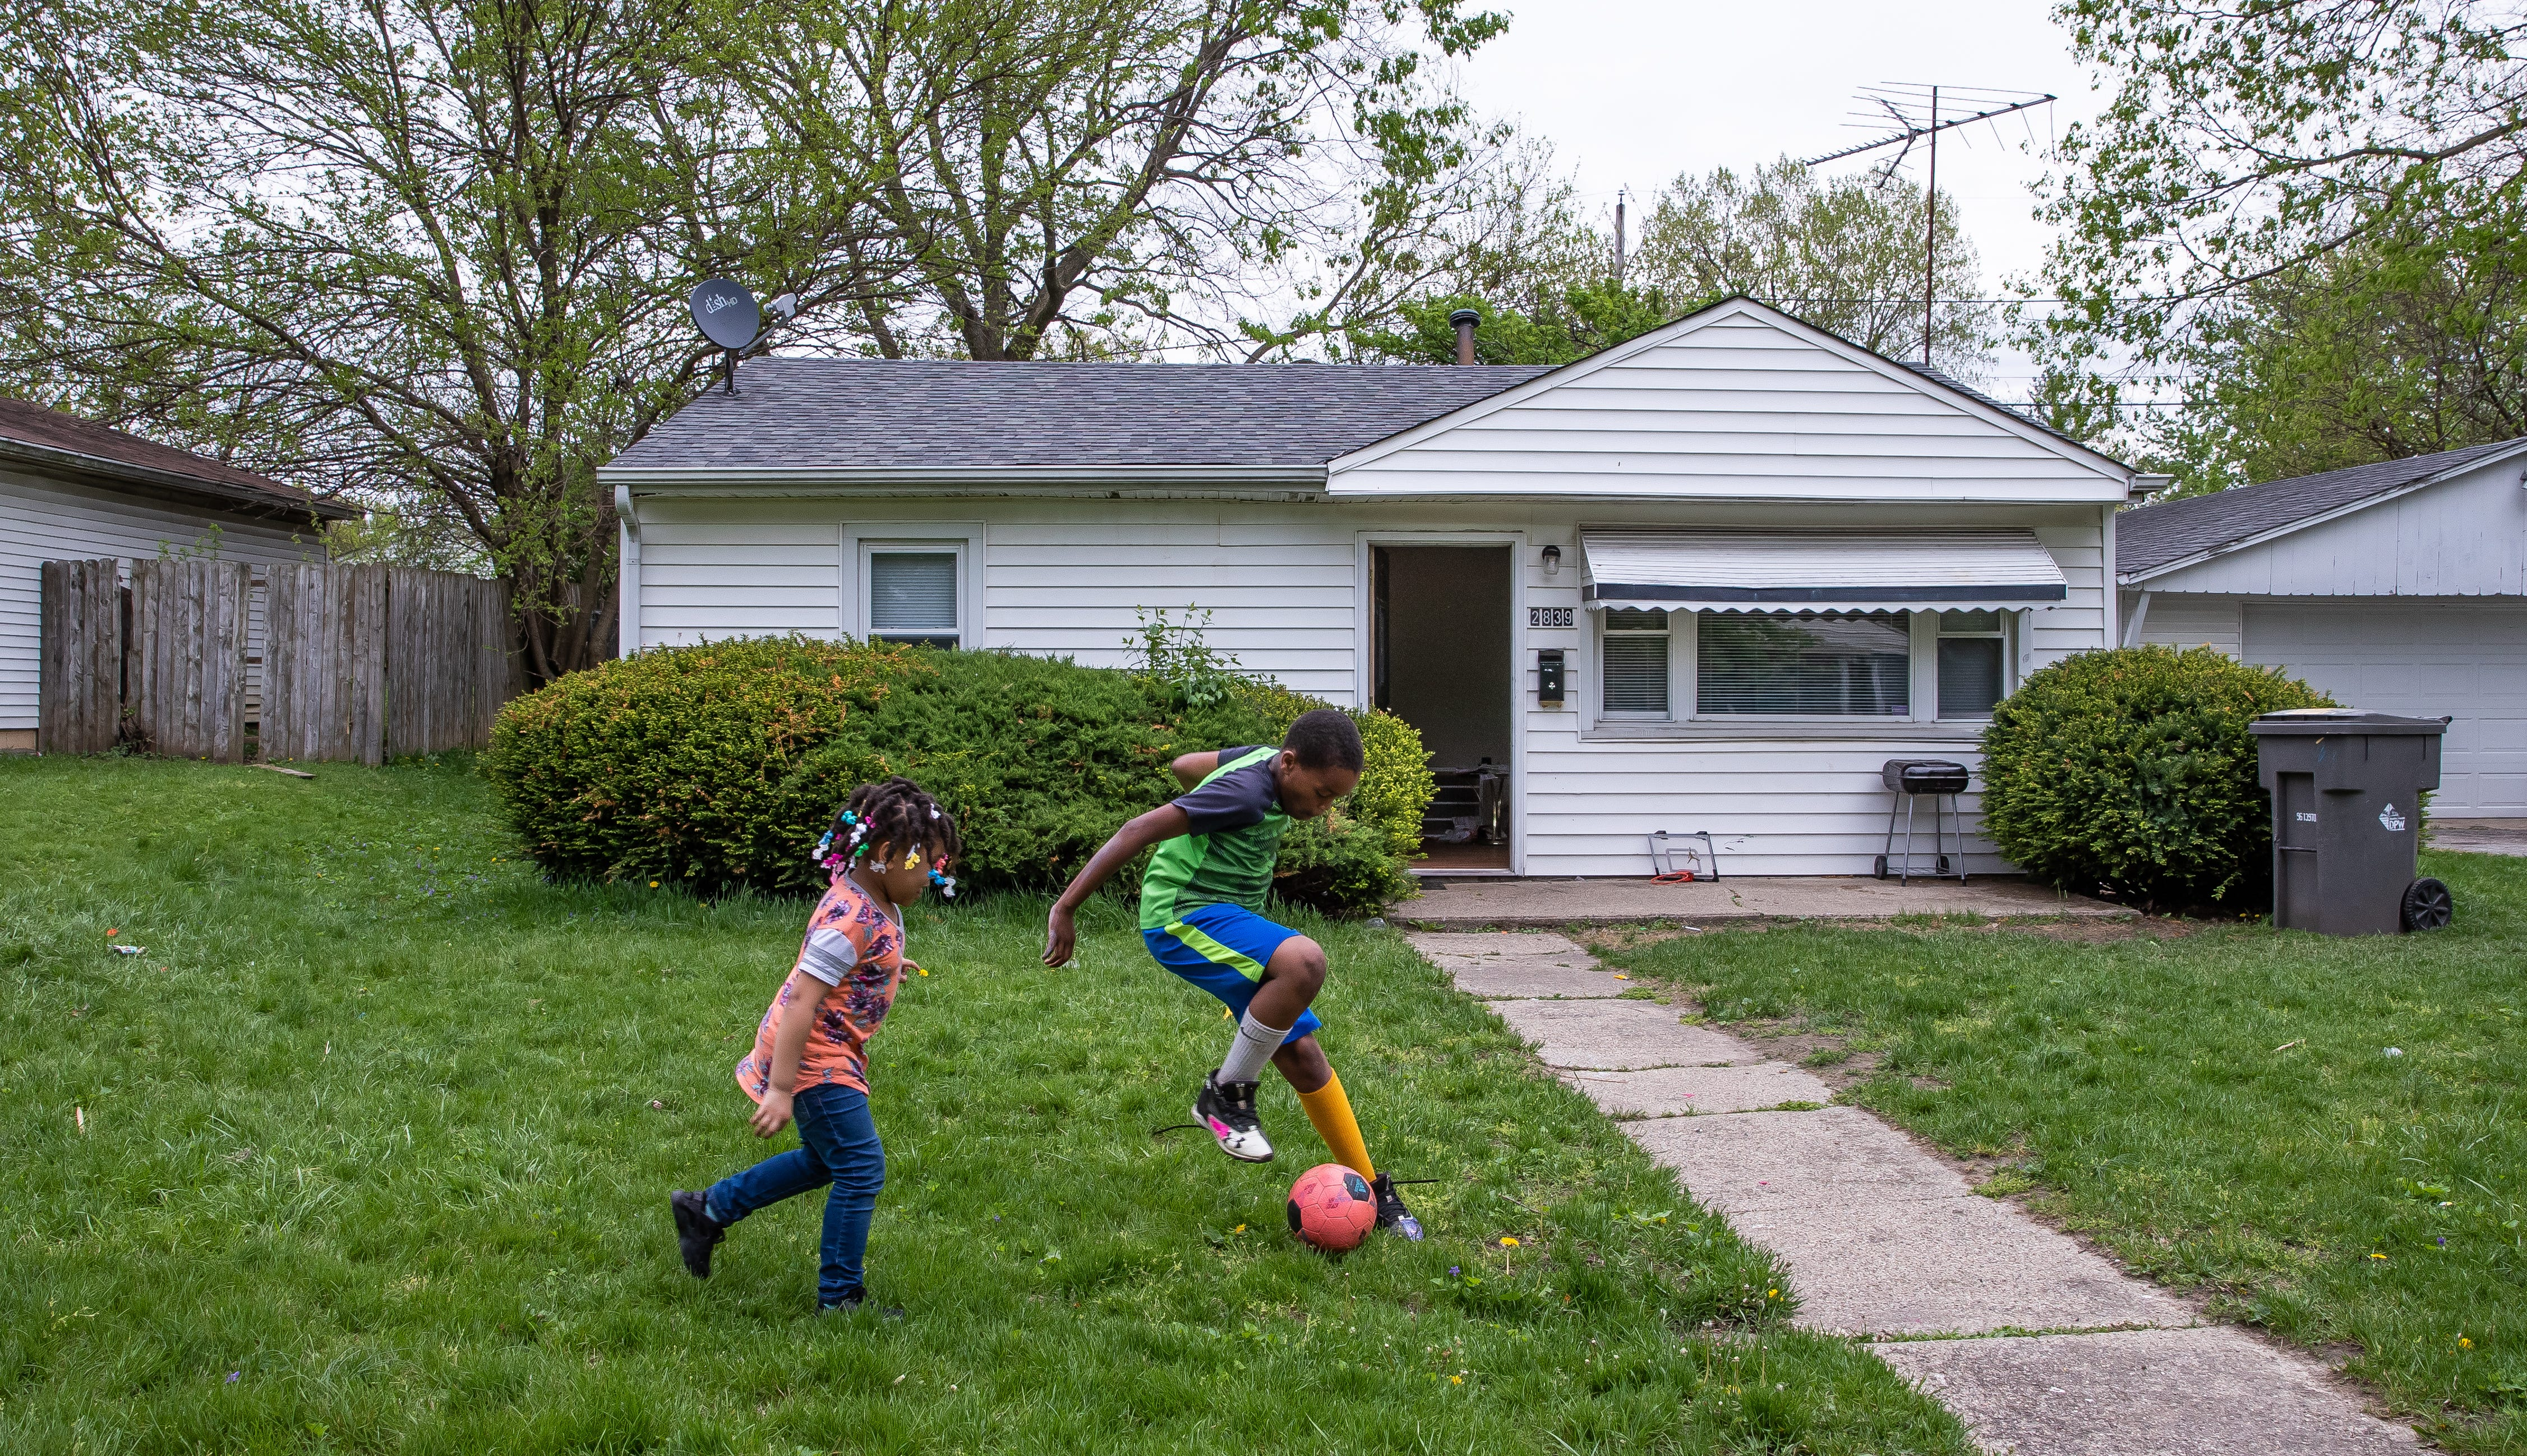 """Kevin Rhodes Jr., an Indy Steelers football player, plays soccer with his cousin at his new home in Indianapolis on Wednesday, May 1, 2019. Rhodes Jr.'s father, Kevin Sr., moved him and his sister, Ke'Asia, to the new home after multiple robberies at their home on Herschell Avenue in Indianapolis. """"Our house got broken into when I was out trick-or-treating with my kids,"""" said Kevin Sr. """"They came in Ke'Asia's window so she wouldn't sleep in her room anymore."""" Kevin Sr. raises his two children alone. The children would see their birth mother, Jannie, almost every day before her death."""